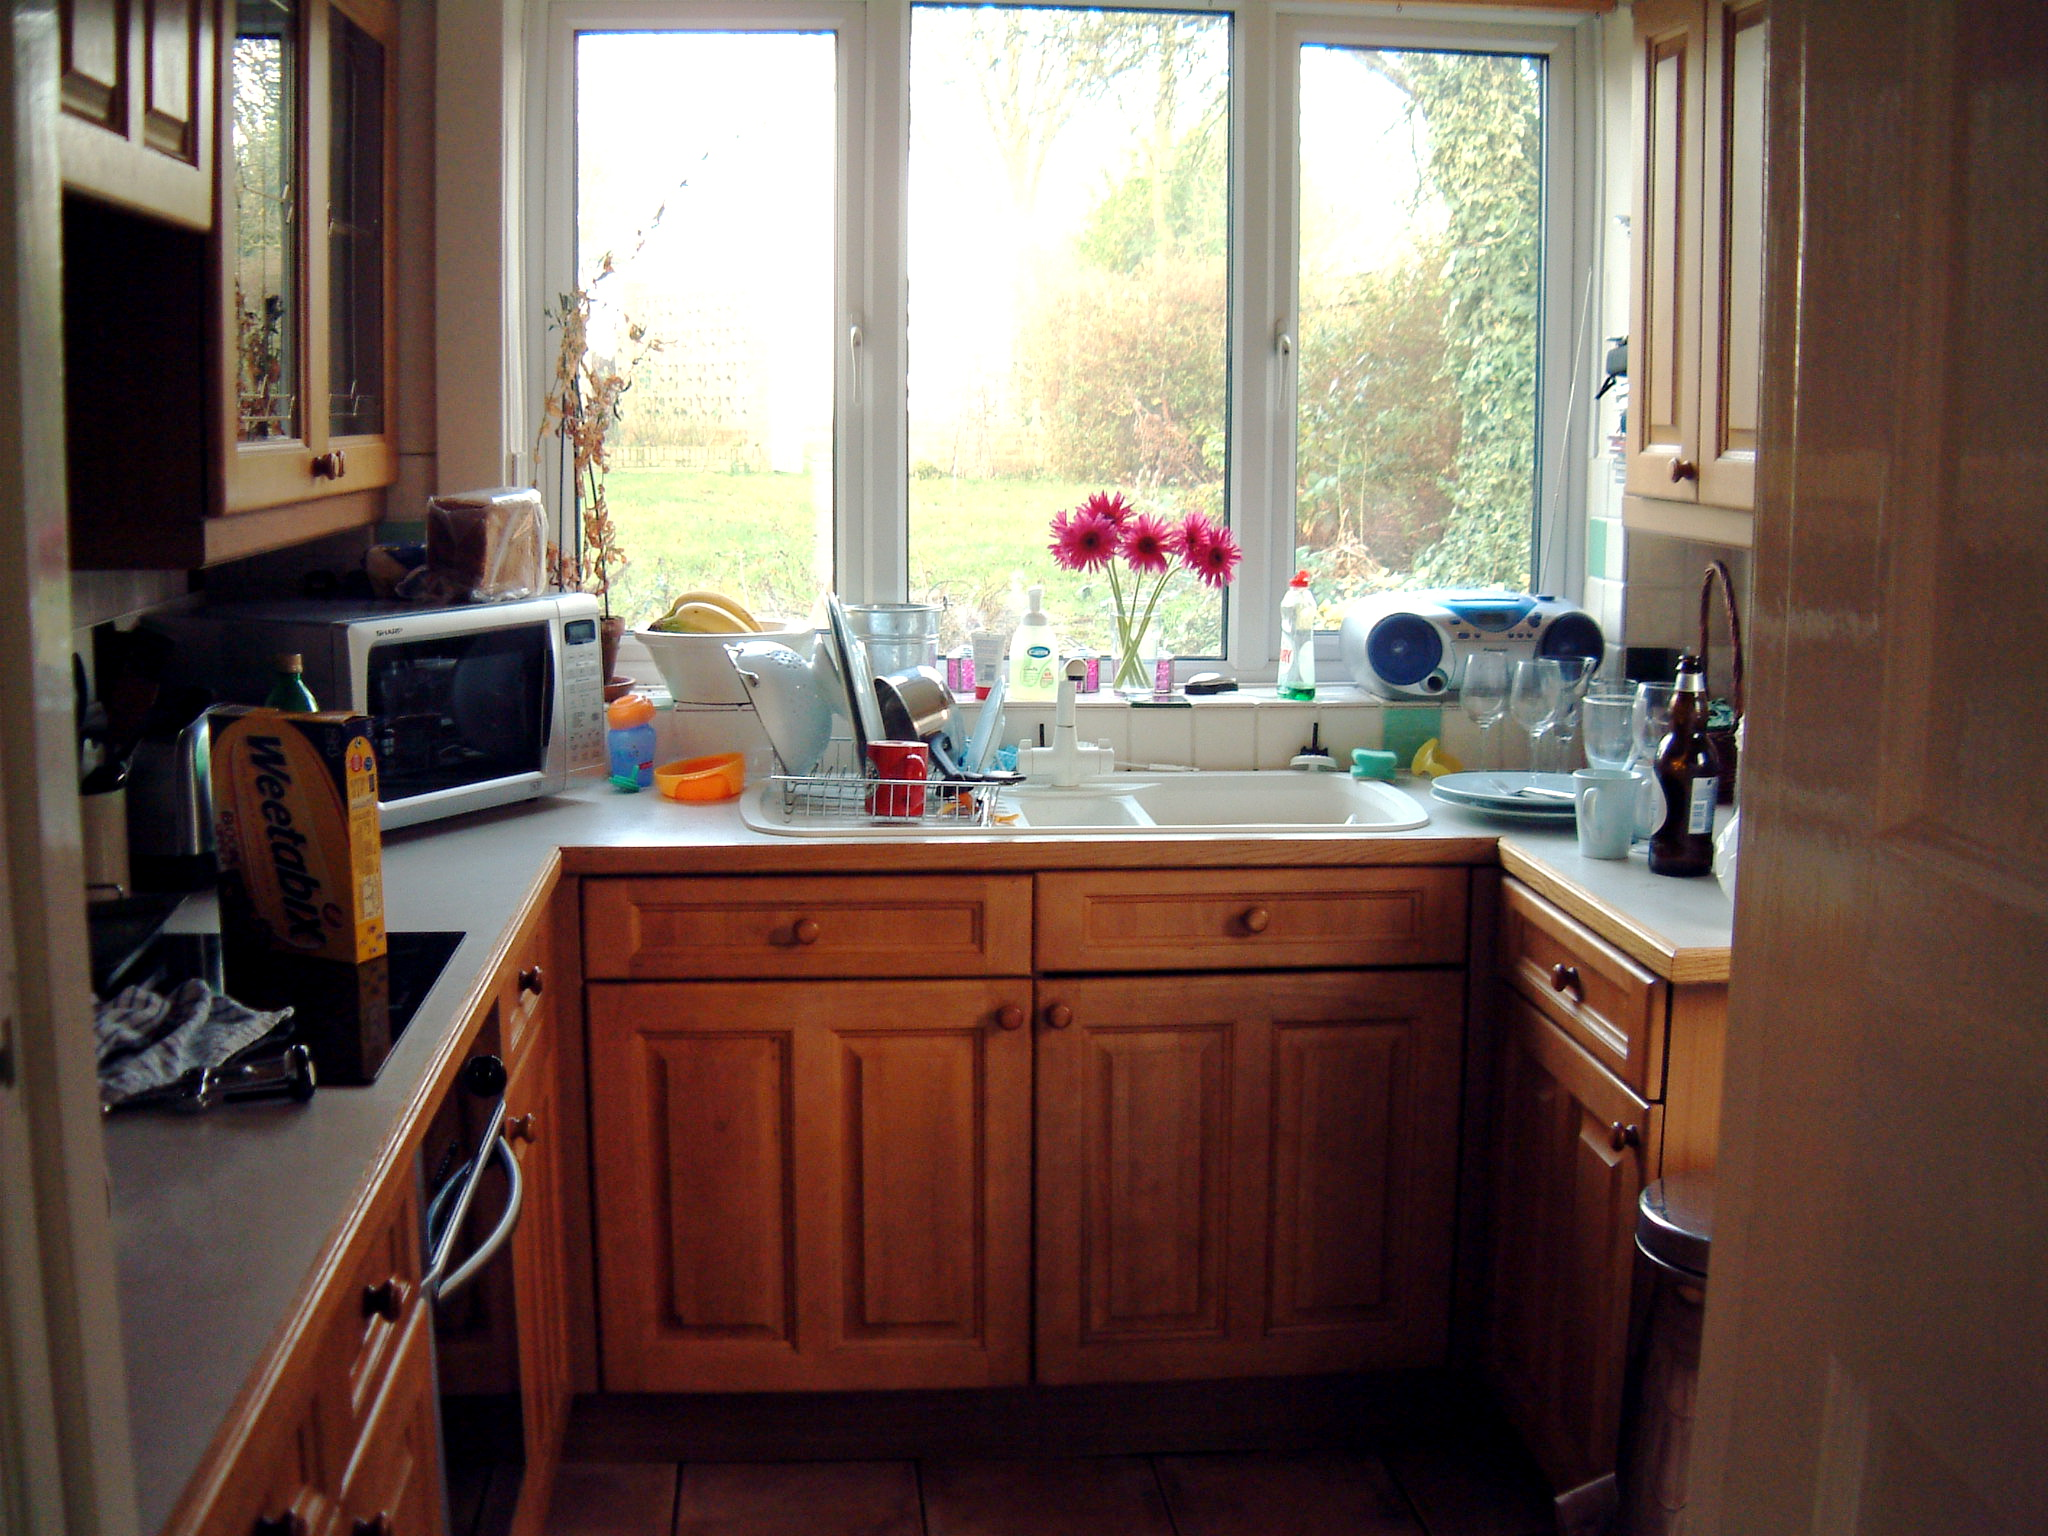 Old Style Kitchen photo - 3